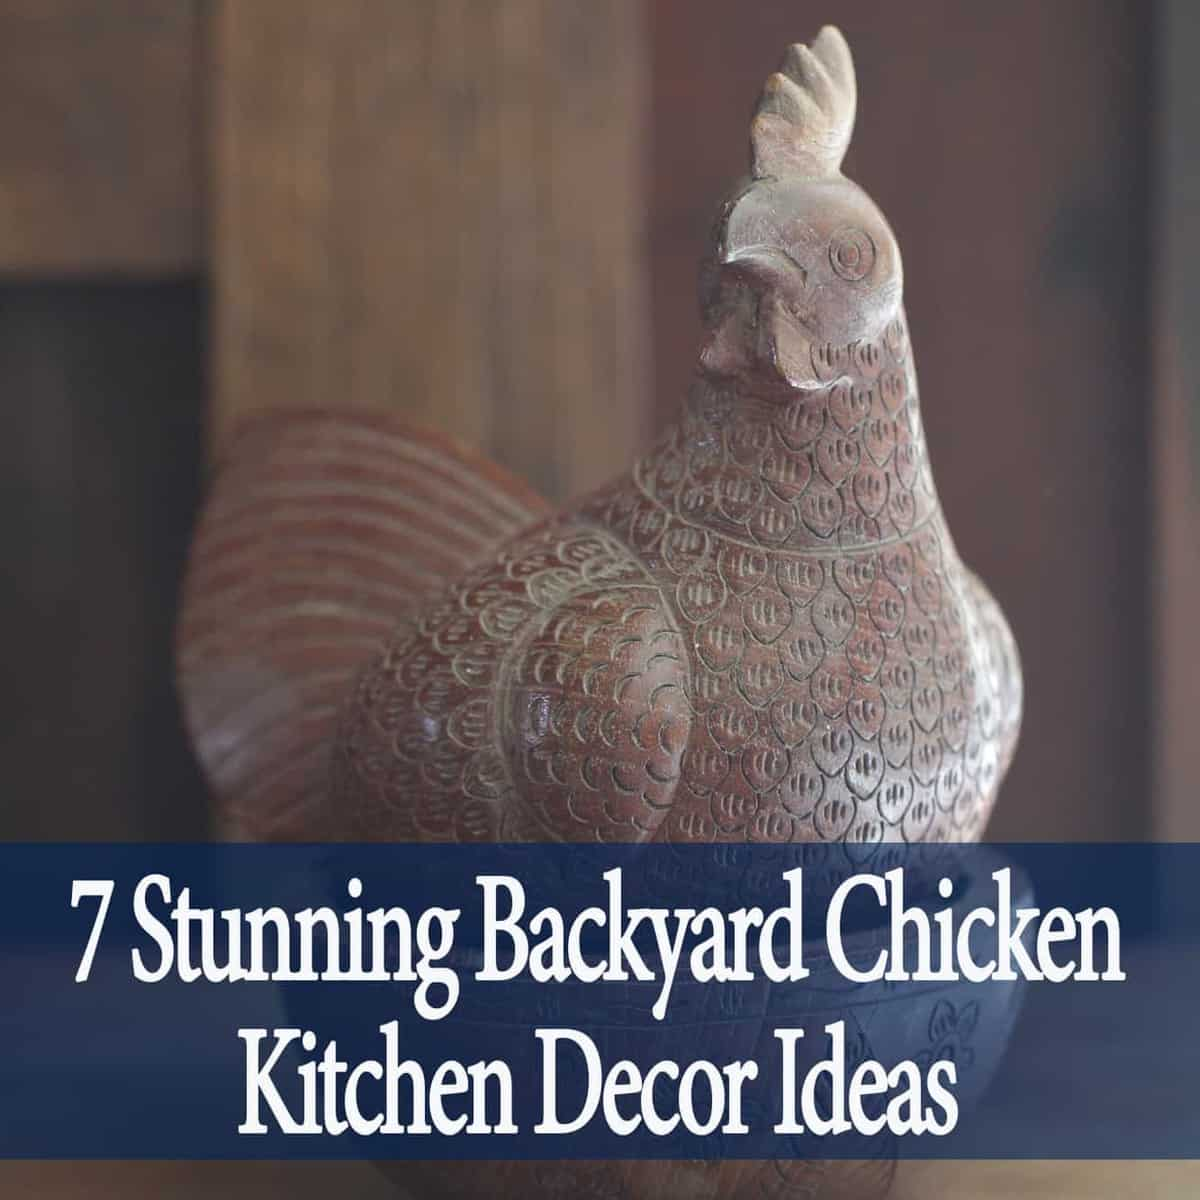 These Backyard Chicken Kitchen Decor Ideas Are Everything